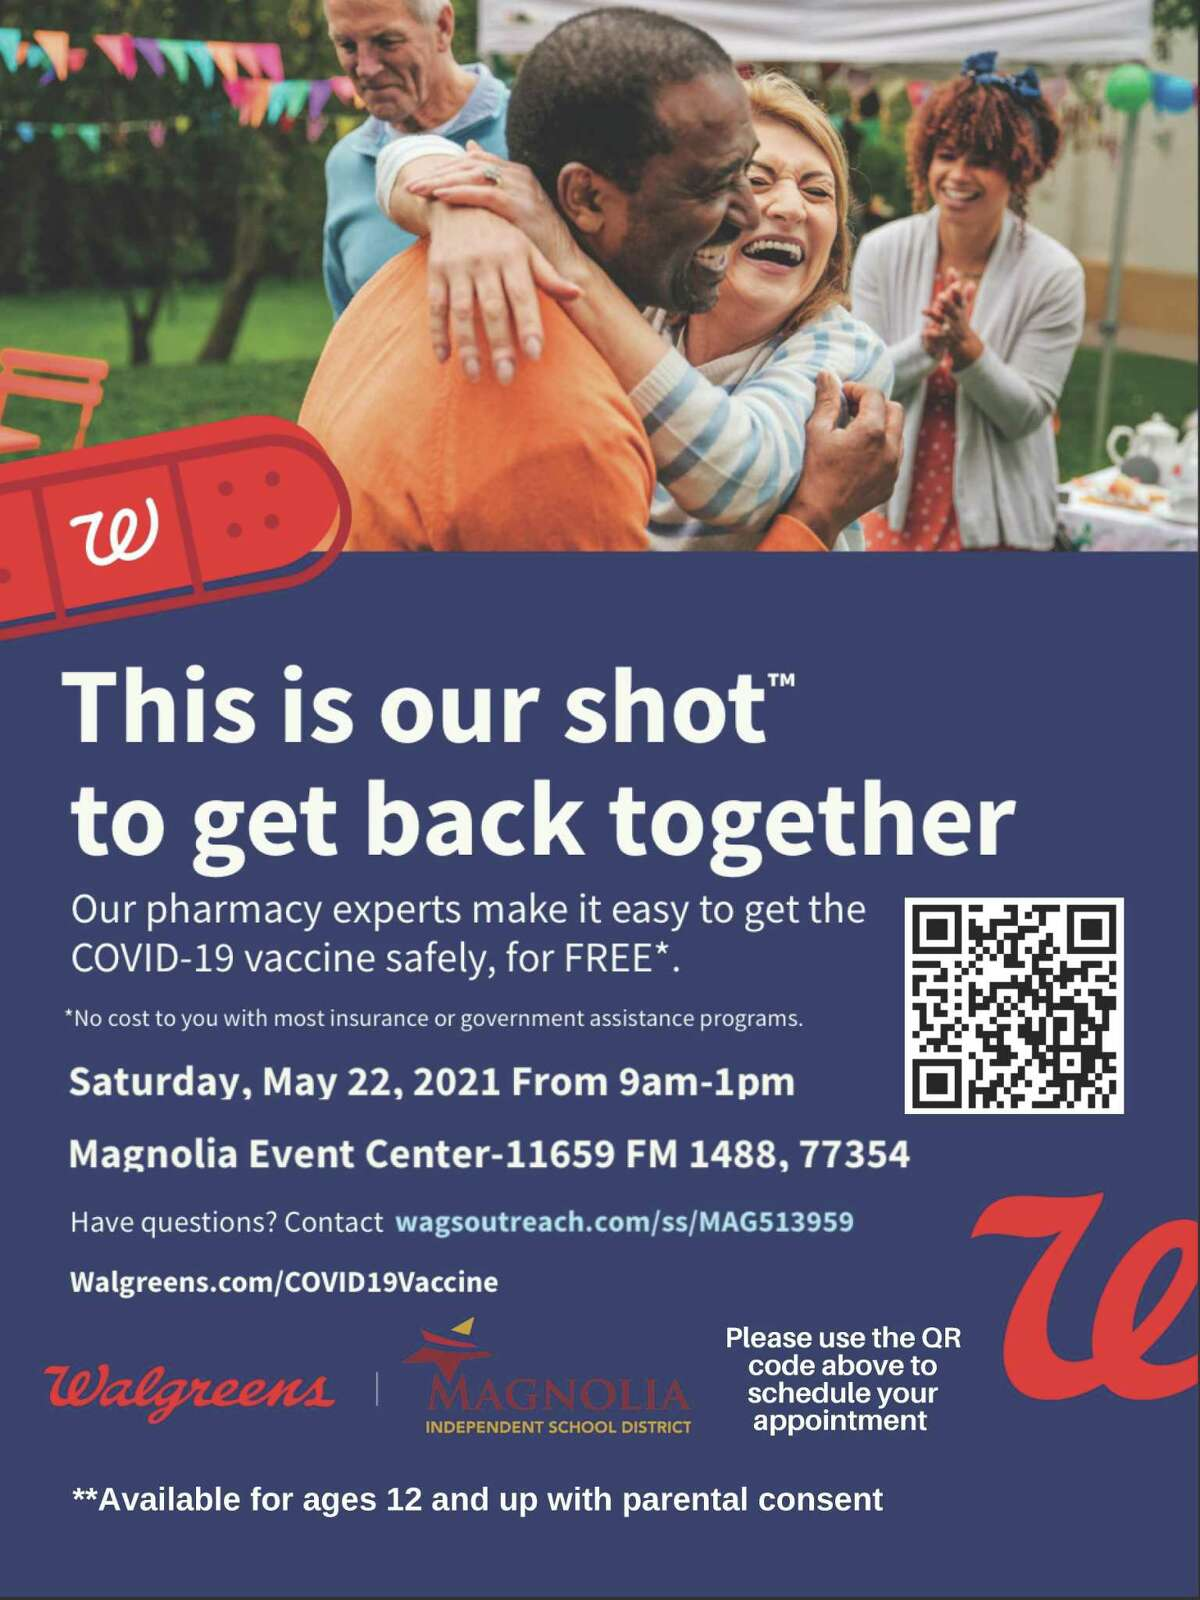 Free COVID-19 vaccines will be available to community members at the Magnolia Event Center, 11659 FM 1488, on Saturday, May 22, 2021.